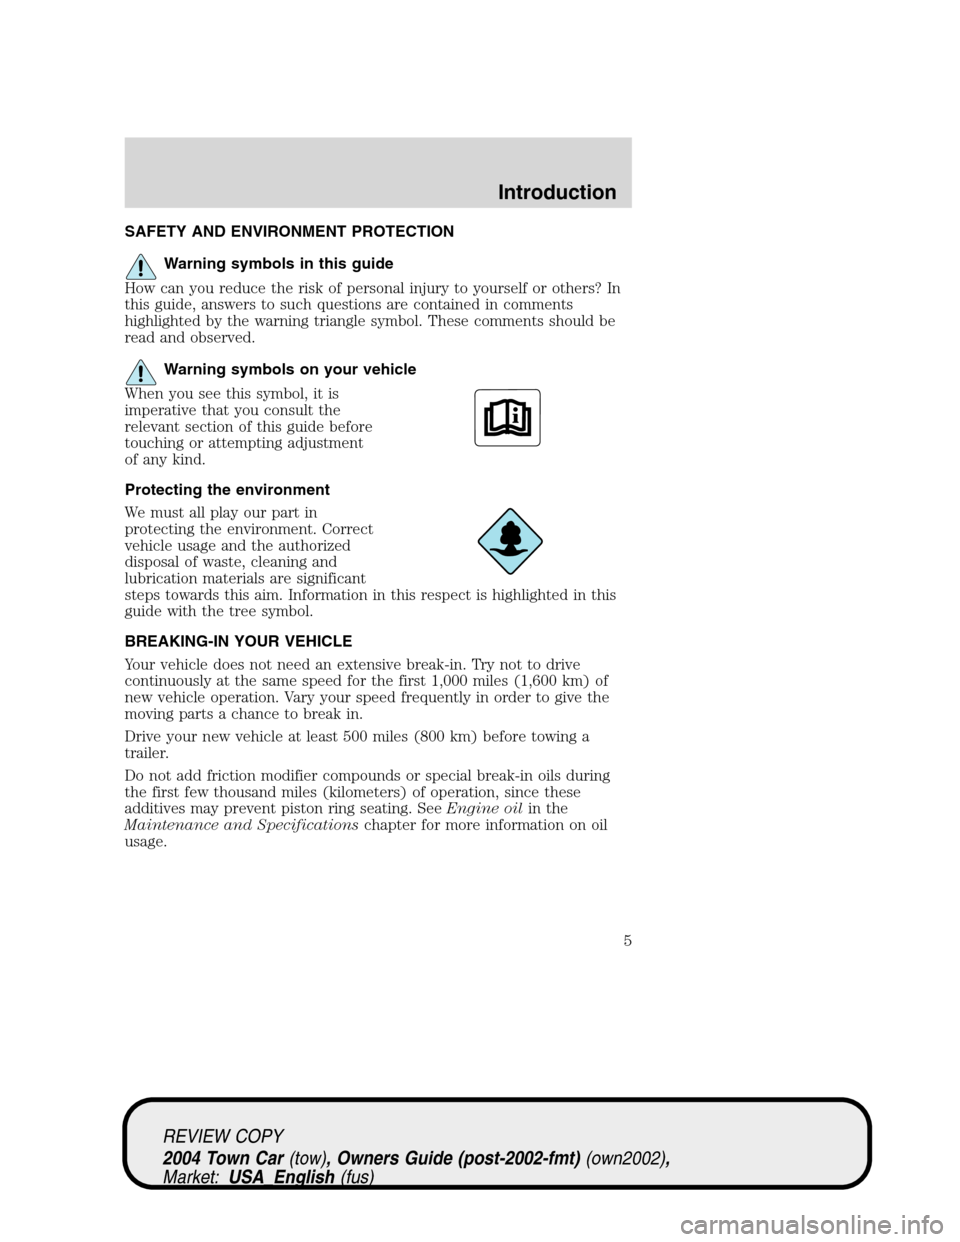 LINCOLN TOWN CAR 2004  Owners Manual, Page 5